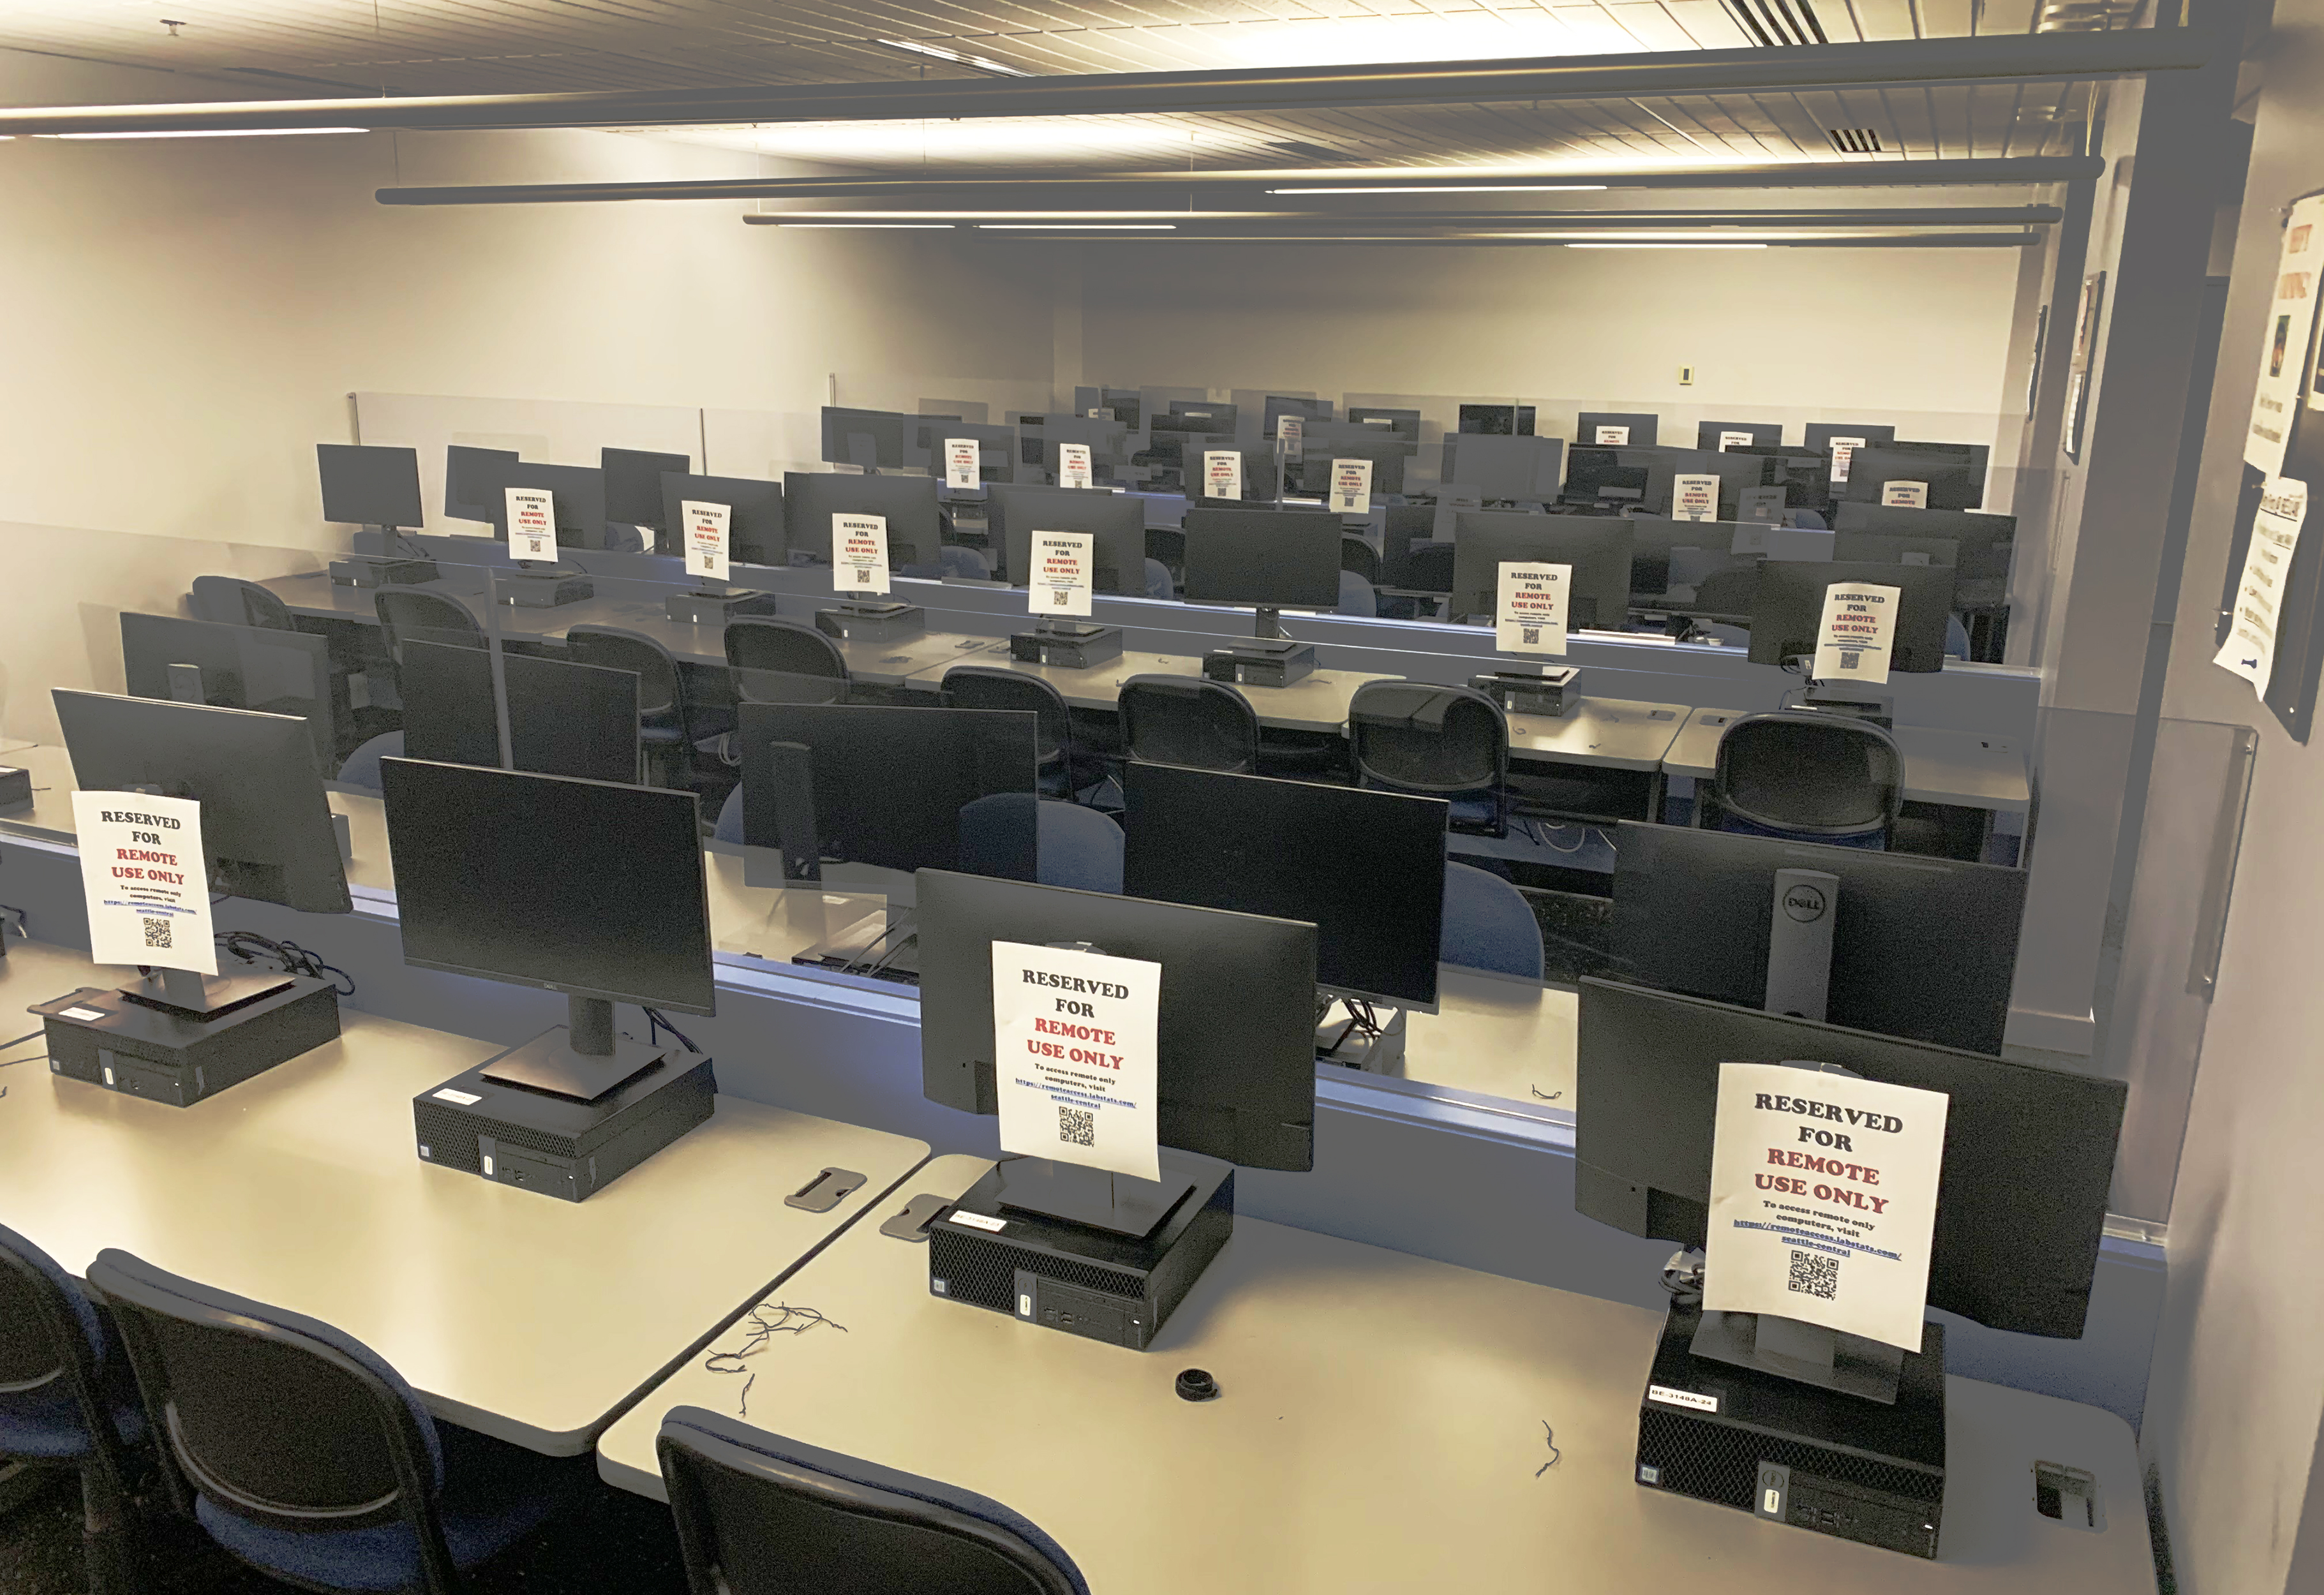 A computer lab equipped with clear separations